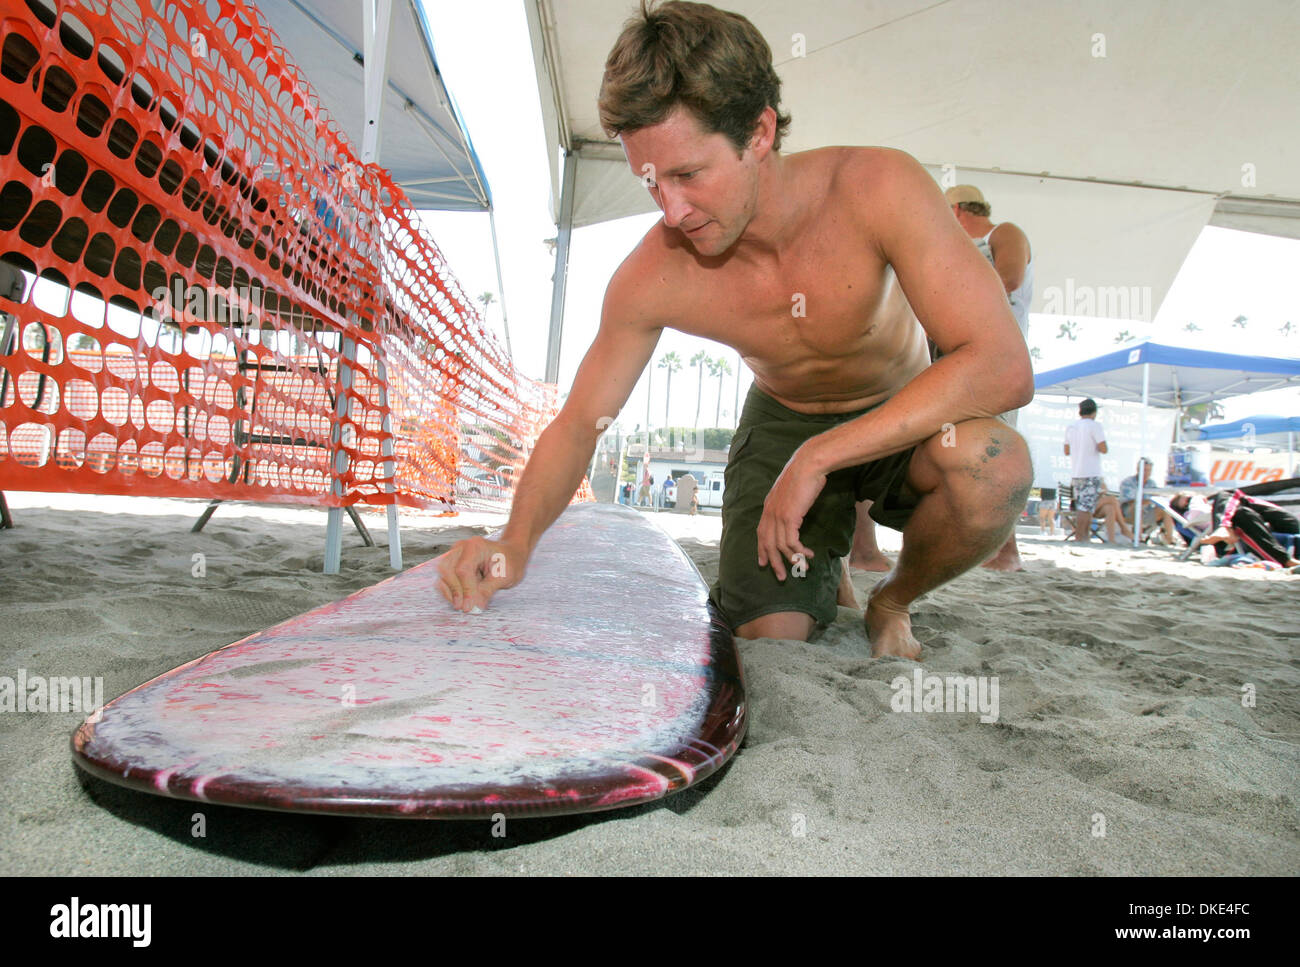 Aug 17, 2007 - Oceanside, CA, USA - MATT DALTON, 28, of Pacific Beach, waxes his board prior to his heat at the Oceanside Longboard Surf Contest. (Credit Image: © Charlie Neuman/SDU-T/ZUMA Press) RESTRICTIONS:  LA and Orange County Papers RIGHTS OUT! and USA Tabloid RIGHTS OUT! - Stock Image